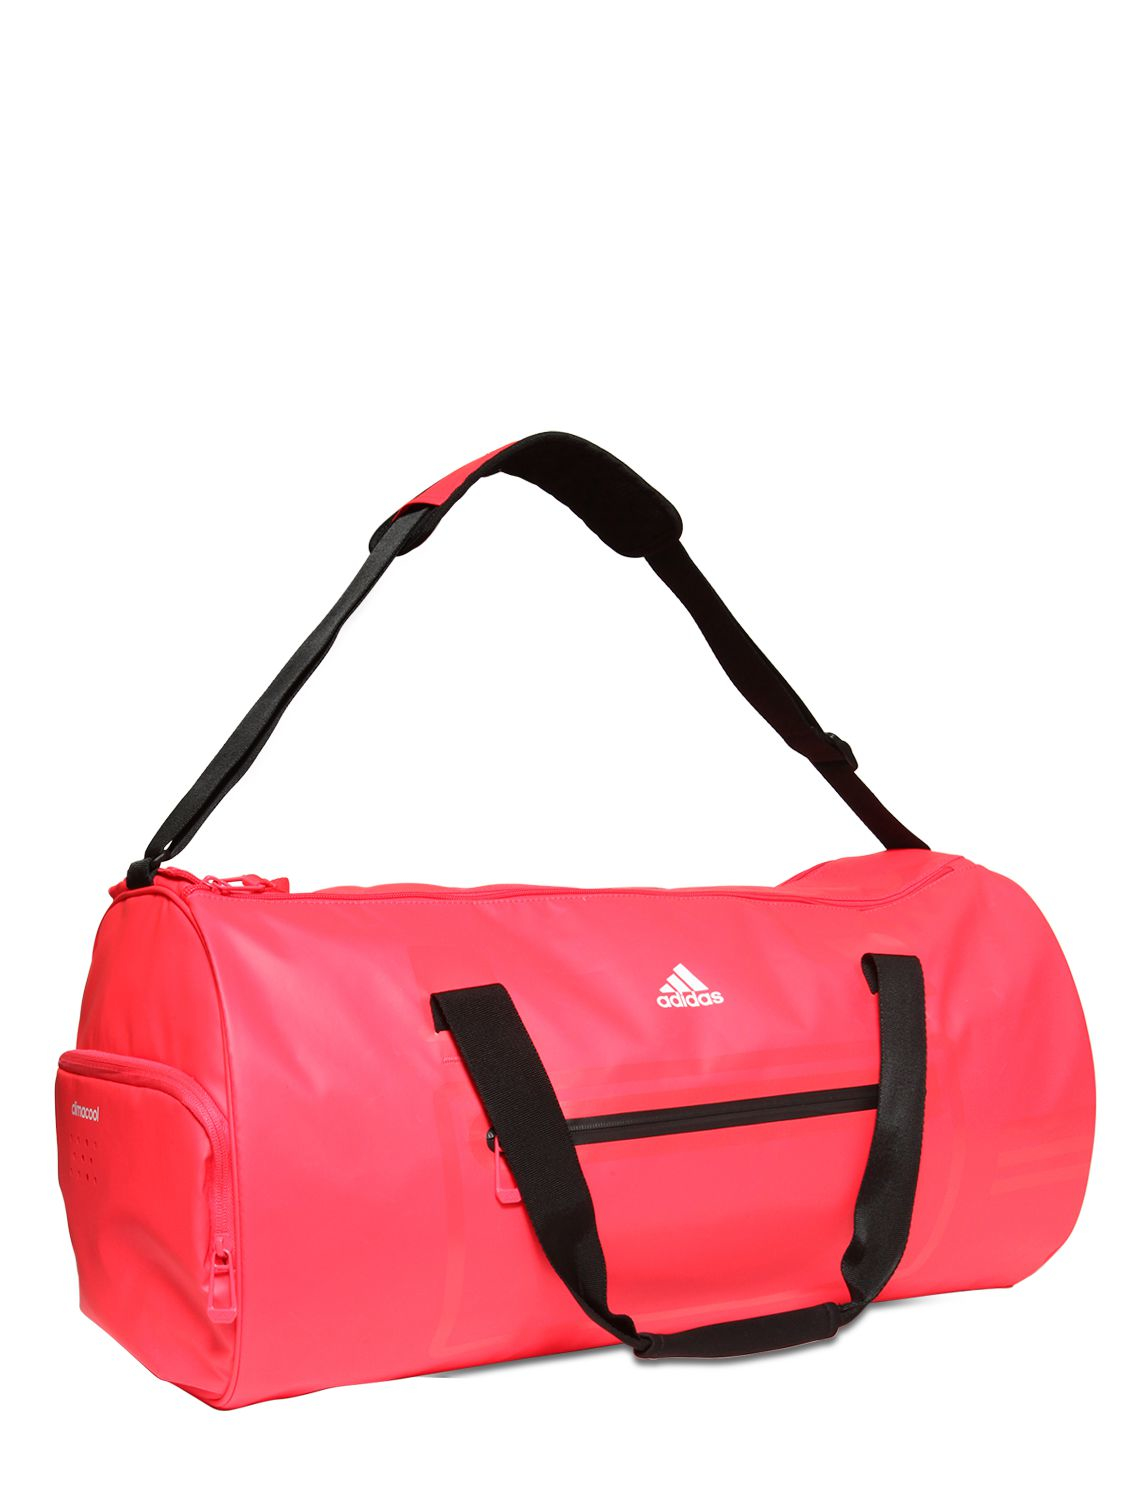 32af223862 adidas Originals Water Repellent Coated Nylon Duffle Bag in Red - Lyst